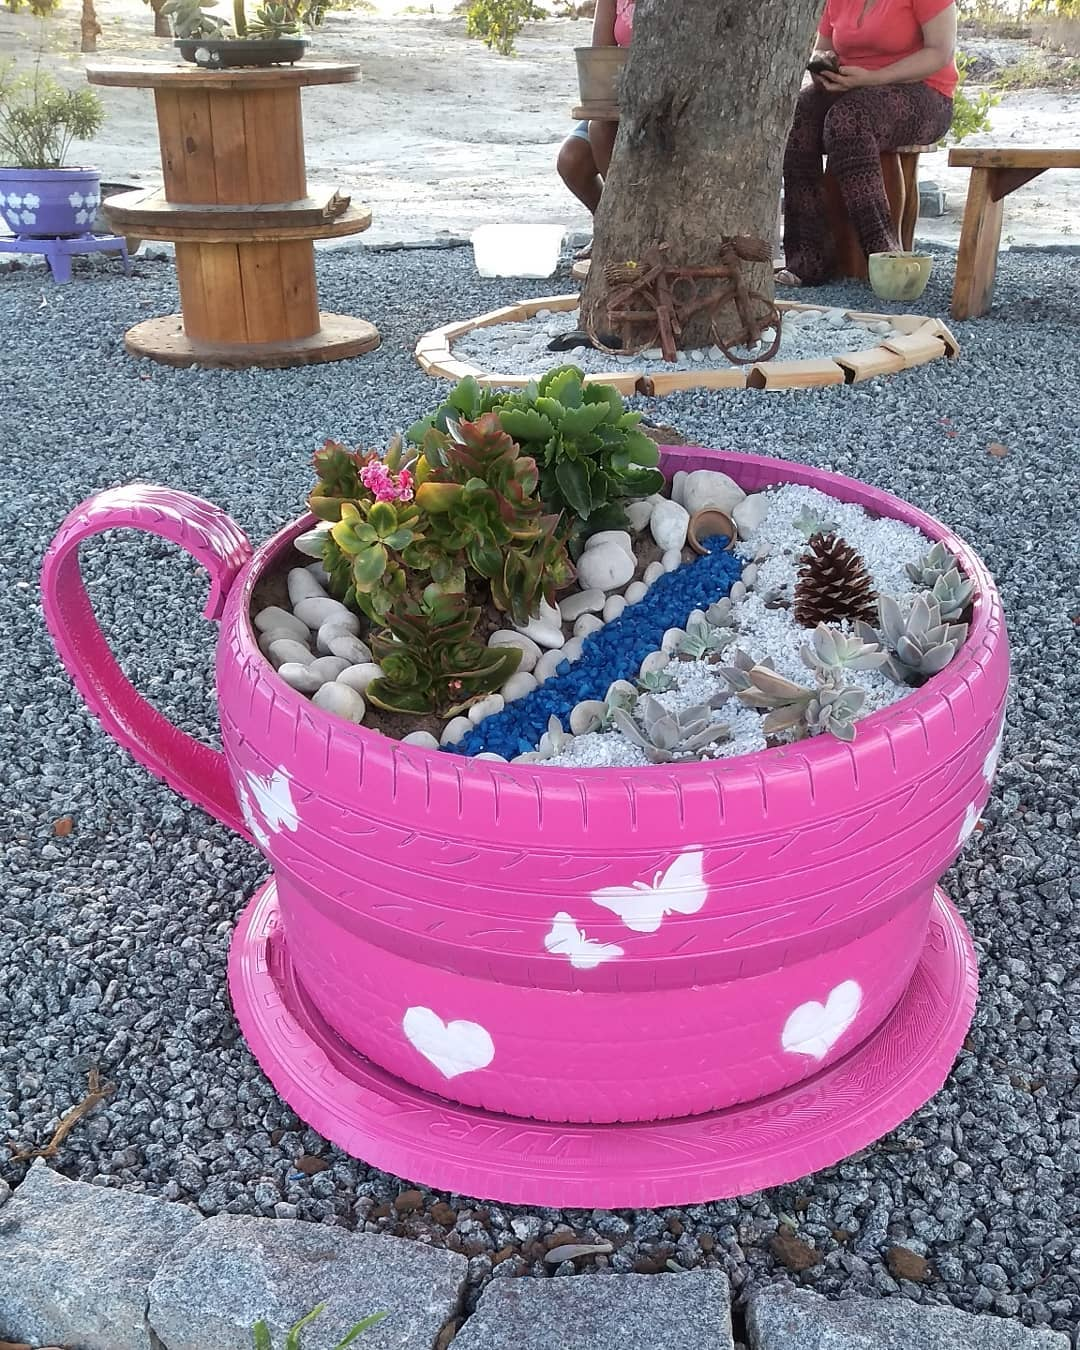 artist repurposes old tires for dog beds and community planters